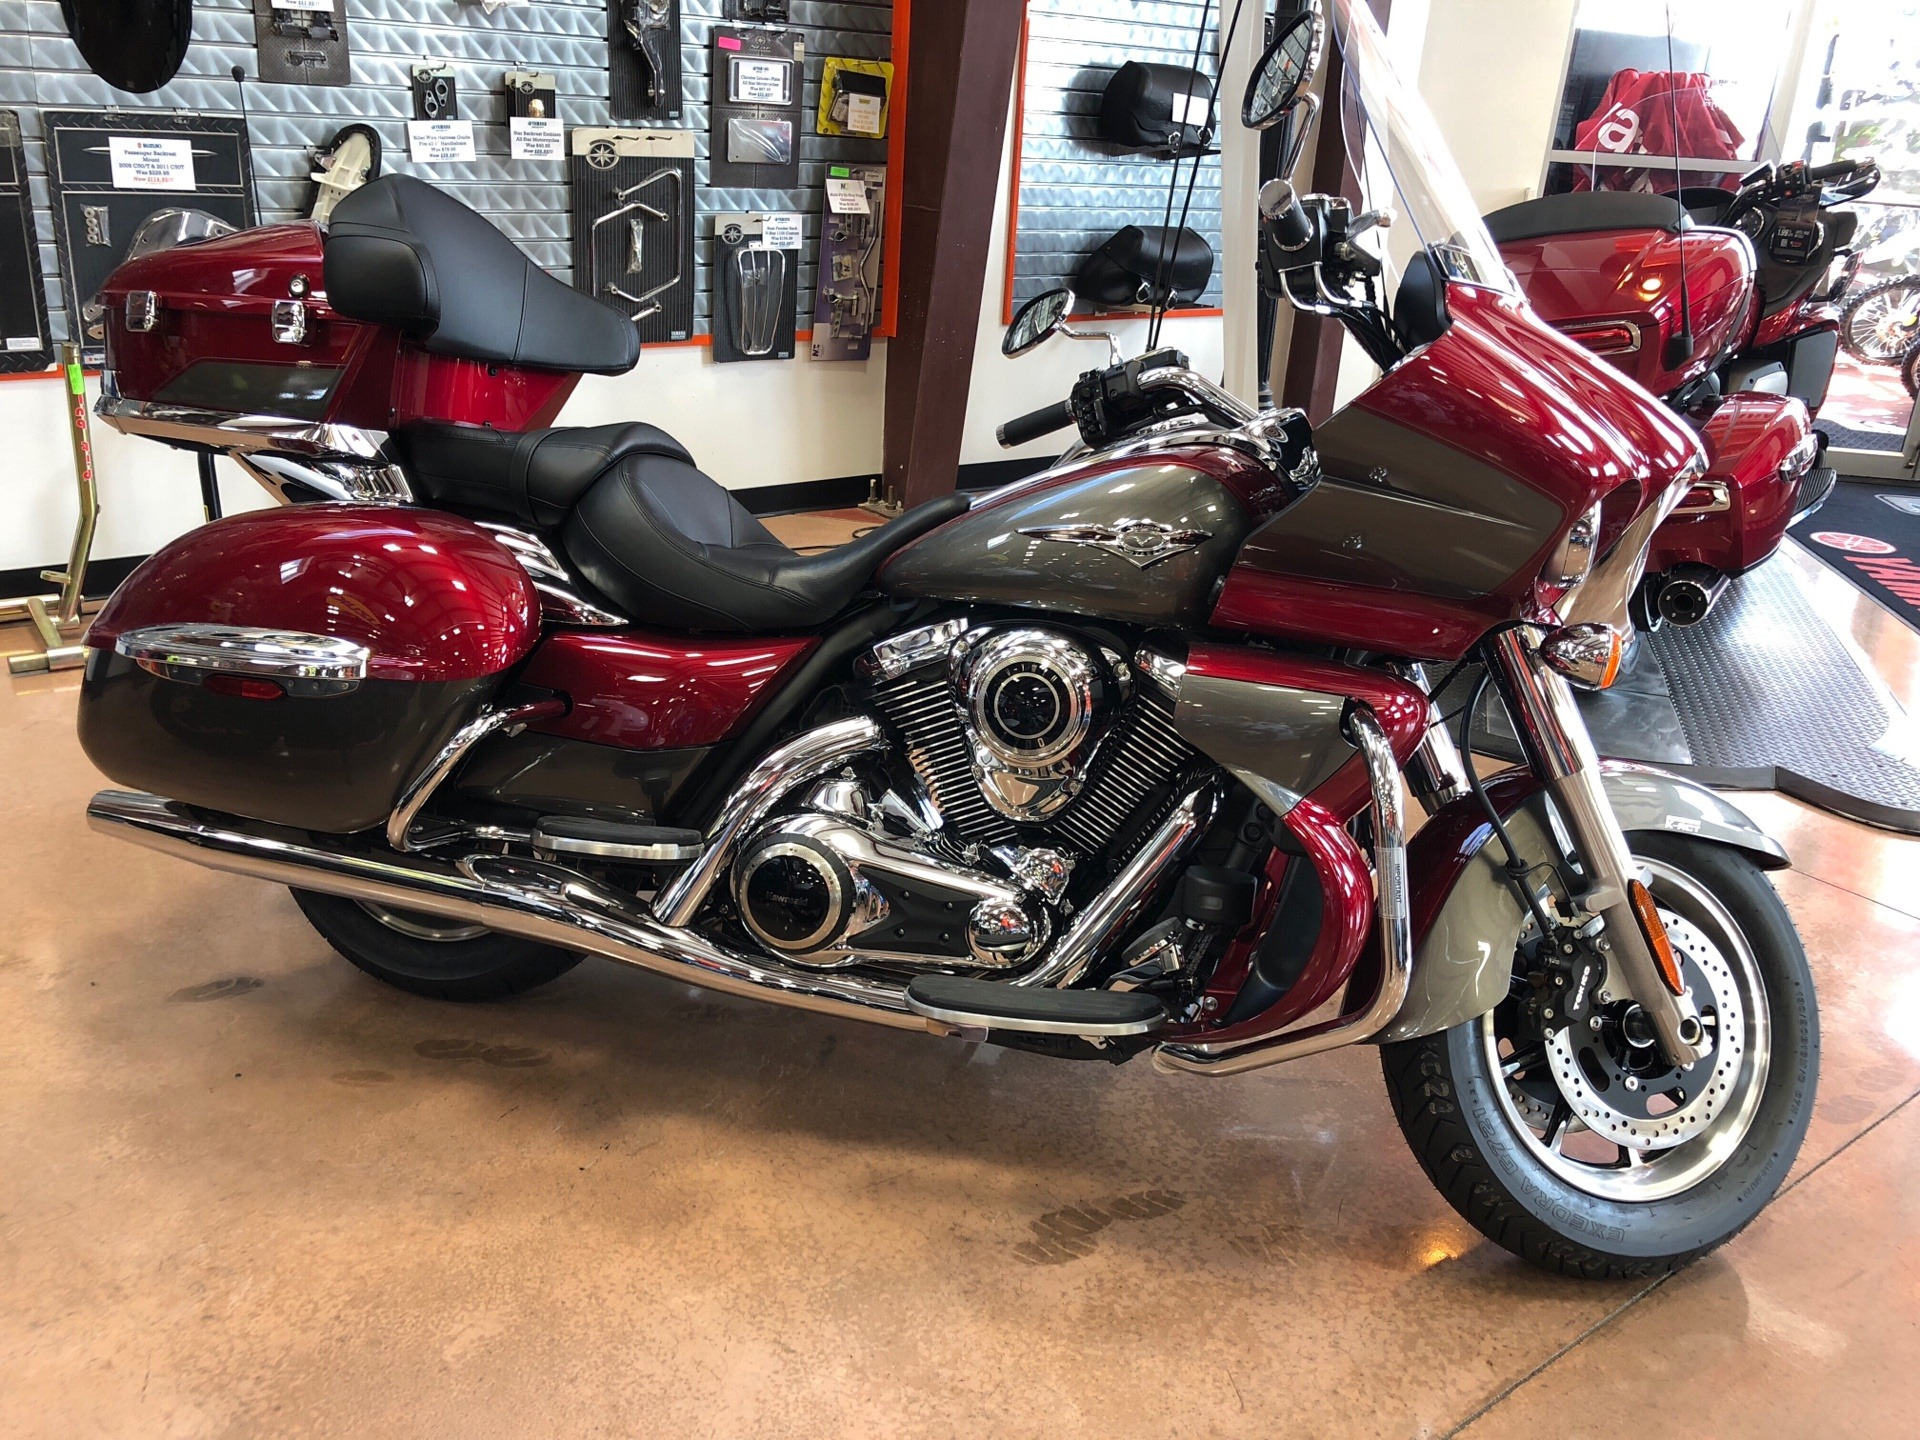 New 2018 Kawasaki Vulcan 1700 Voyager Abs Motorcycles In Evansville Fuel Filter Indiana